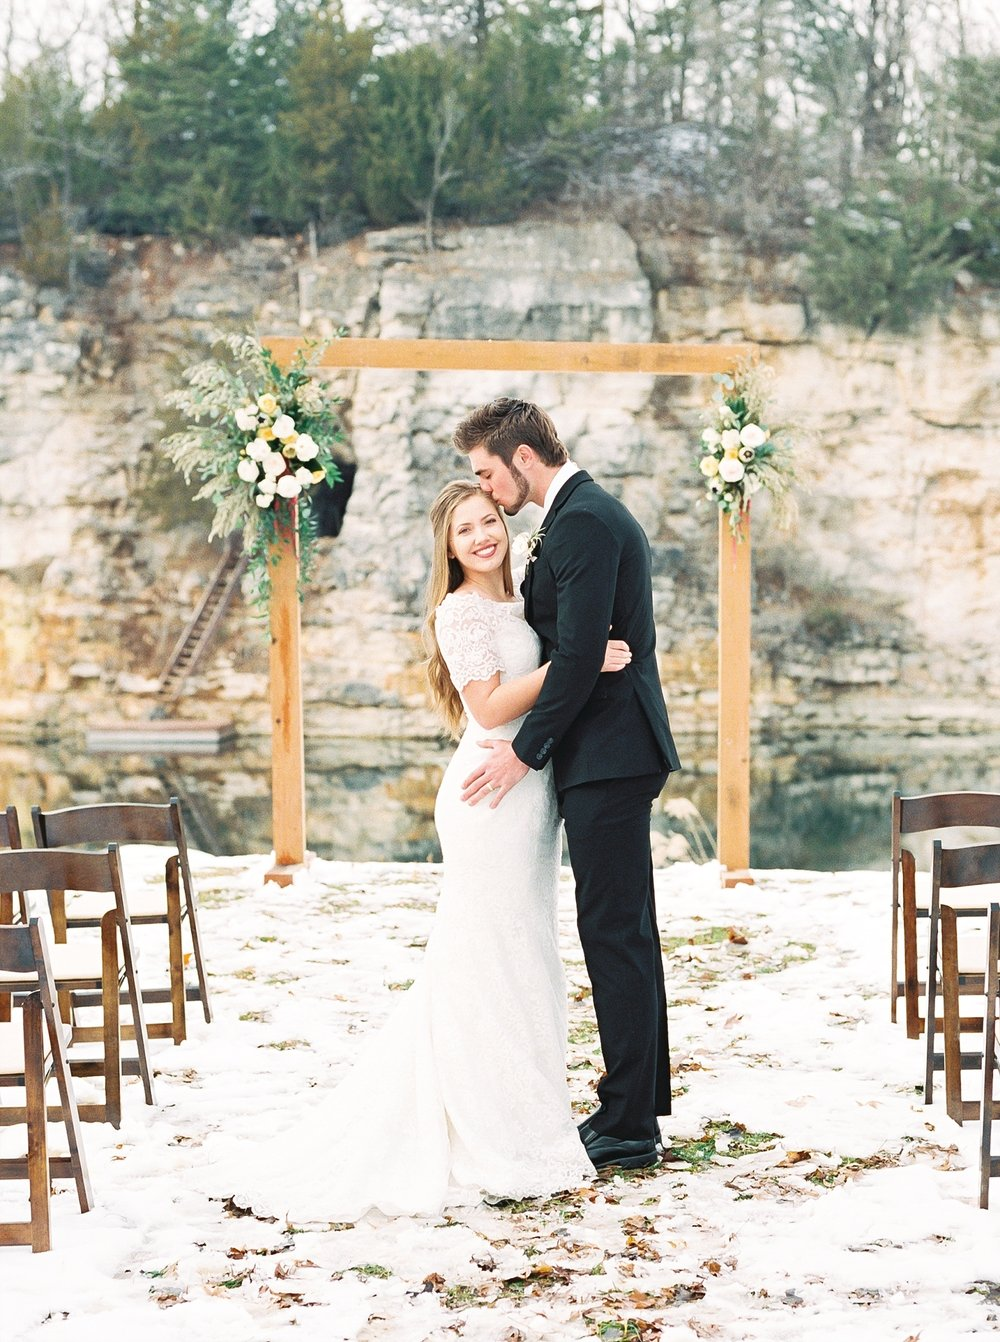 Snowy Winter Wedding at Wildcliff Events Lake With Earthy Jewel Tones and Organic Refined Style by Kelsi Kliethermes Photography Kansas City Missouri Wedding Photographer_0117.jpg